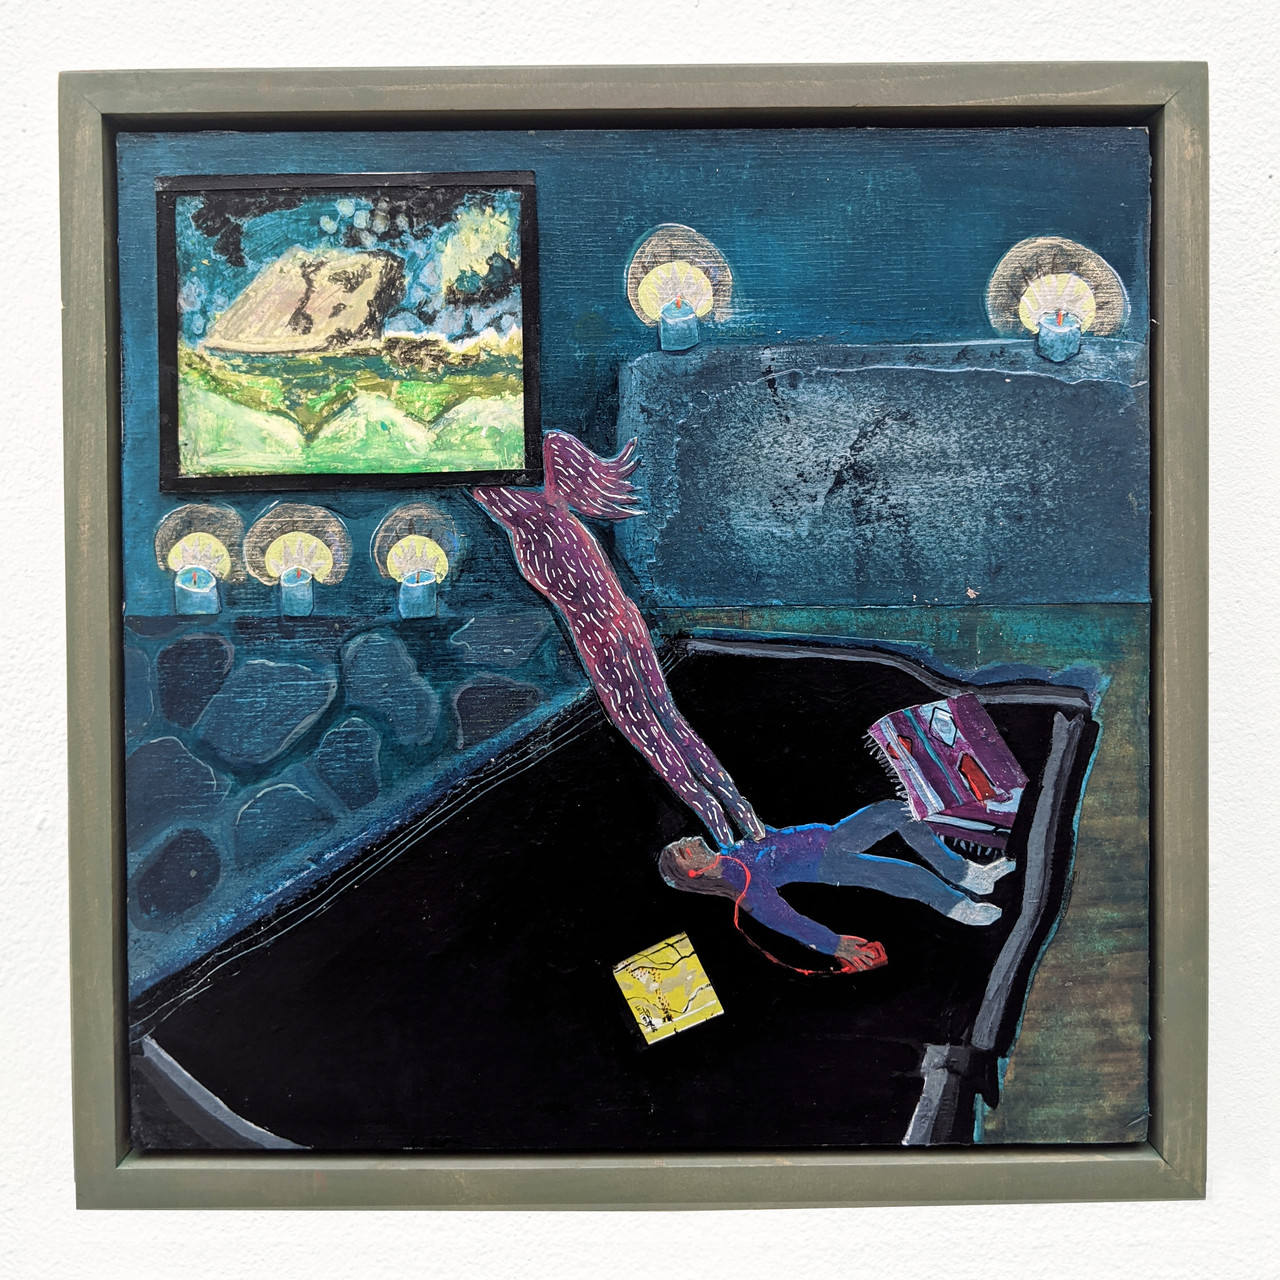 The Plateaux Of Mirror, Collage On Board by Abrahm Guthrie.